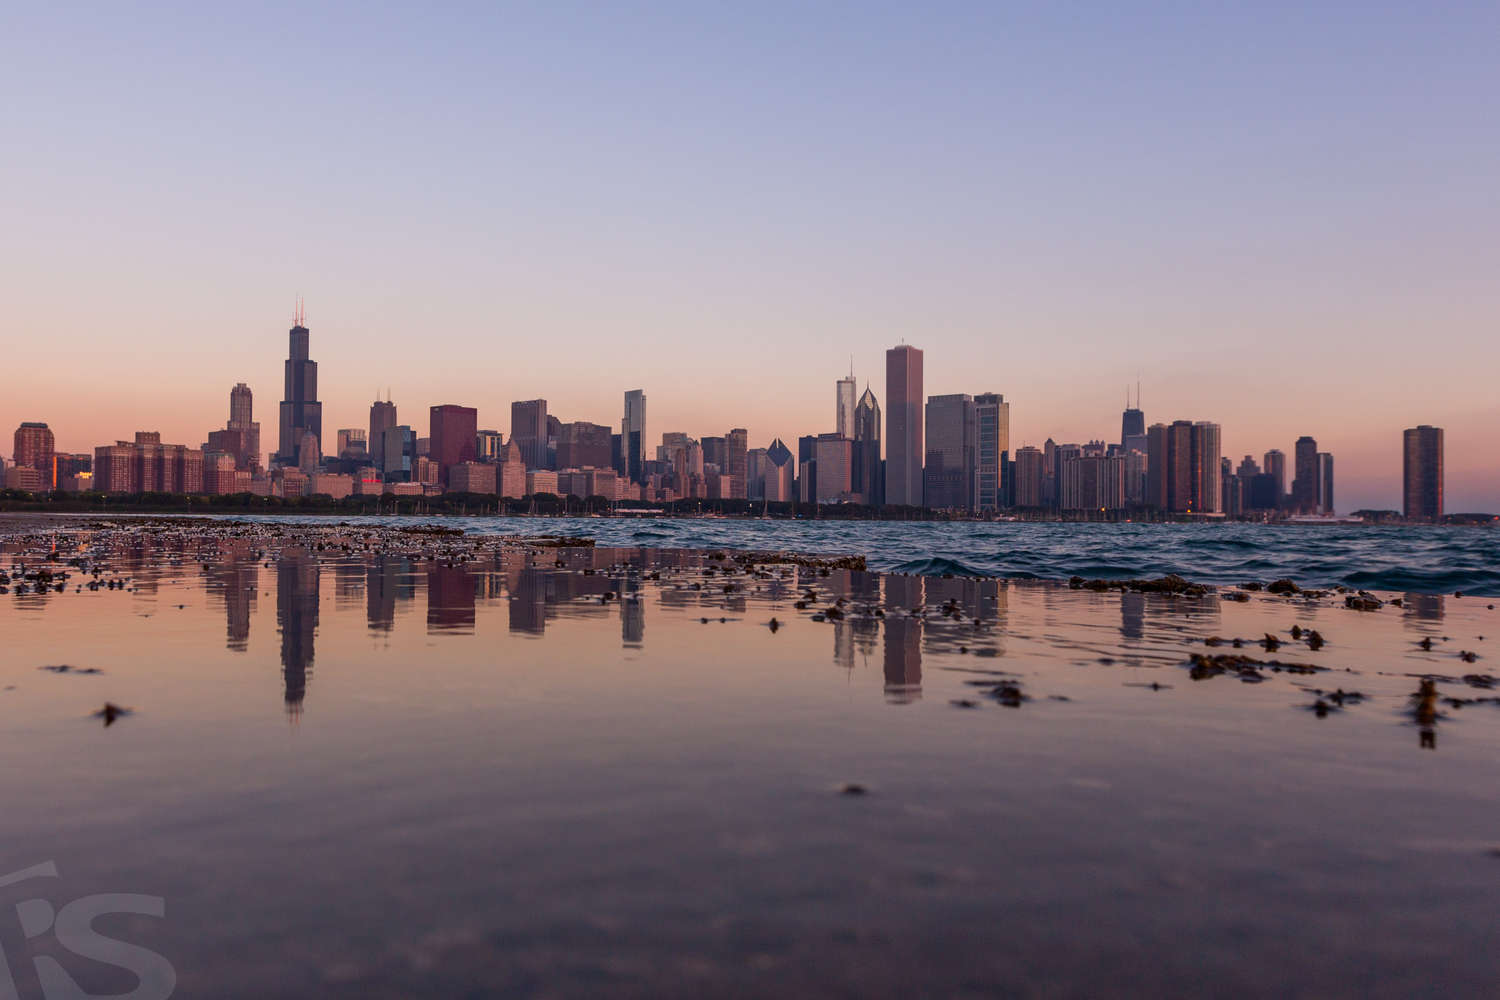 THE RISE OF CHICAGO